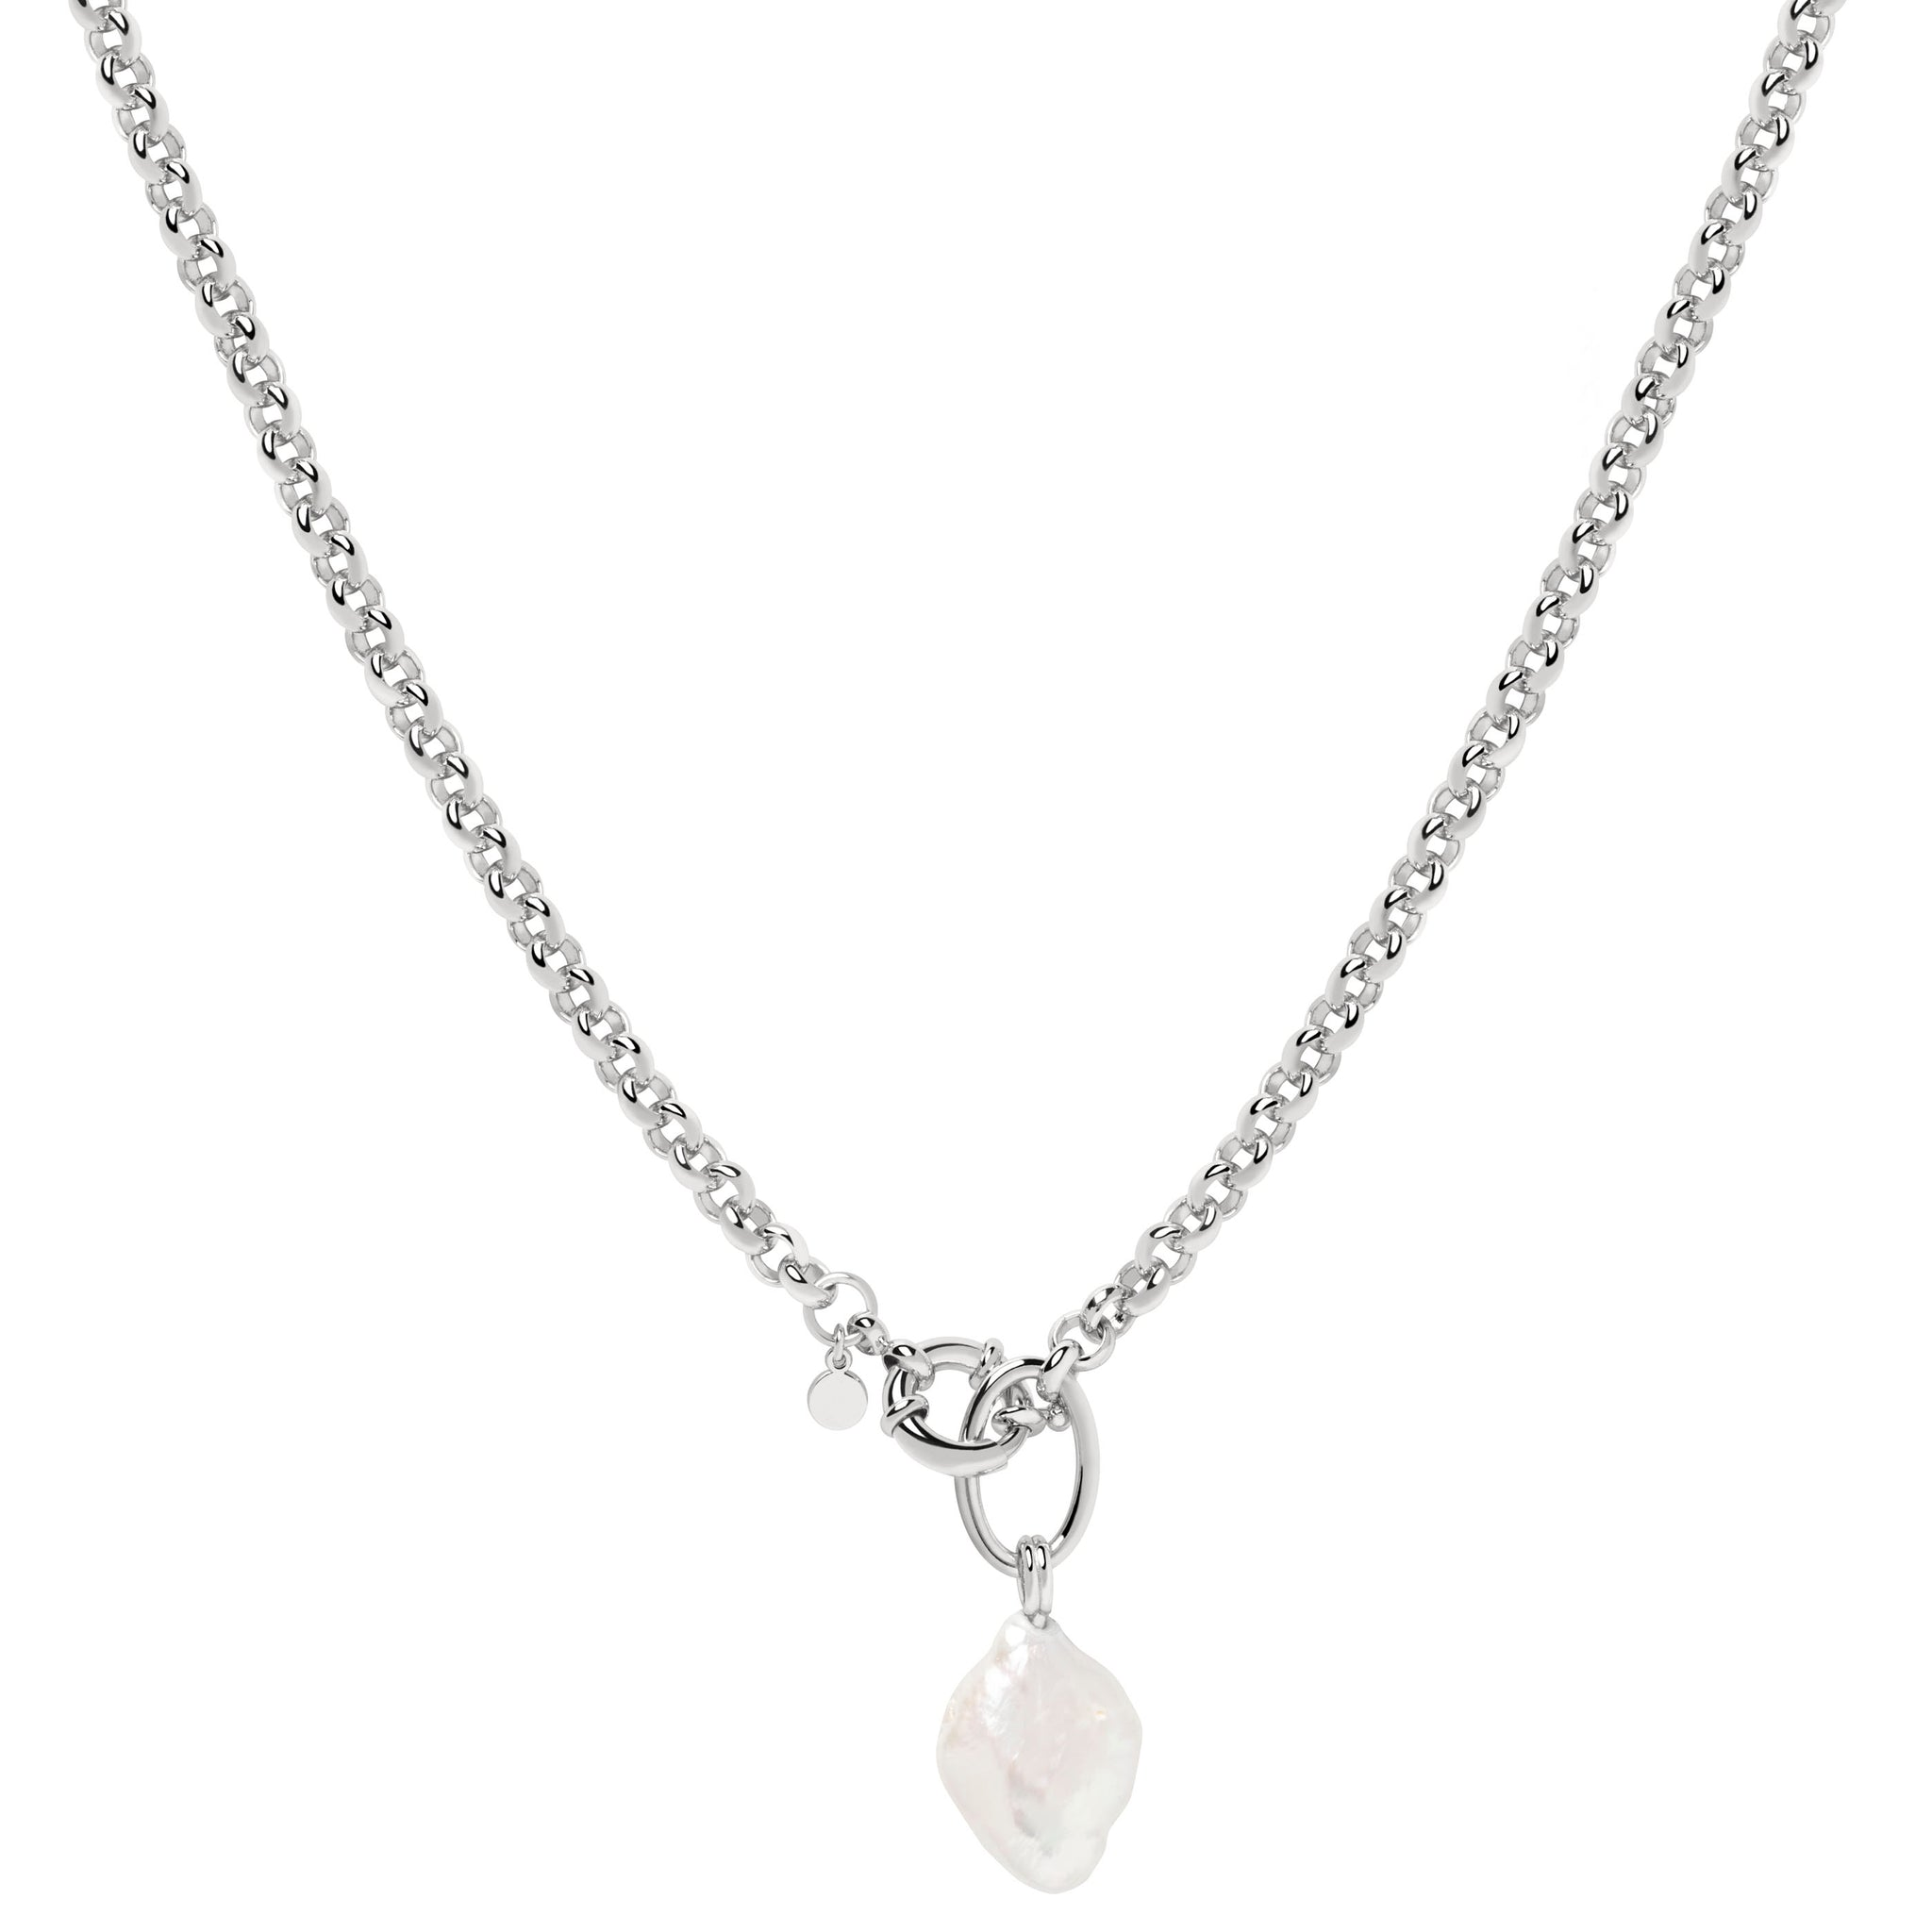 Illume Pearl Chain Necklace in Silver